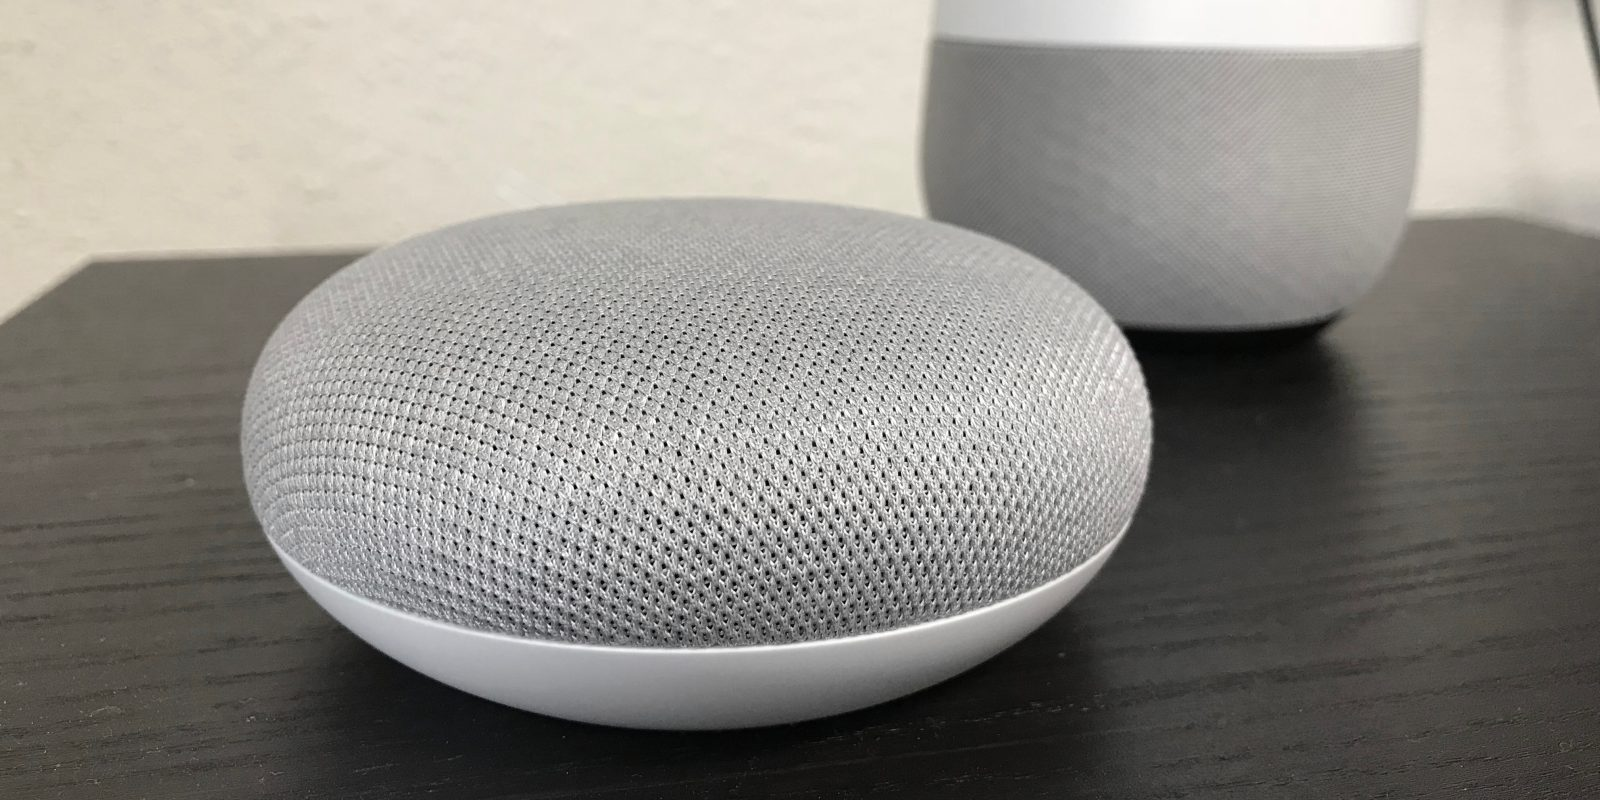 Google home mini 9to5google for Google home mini